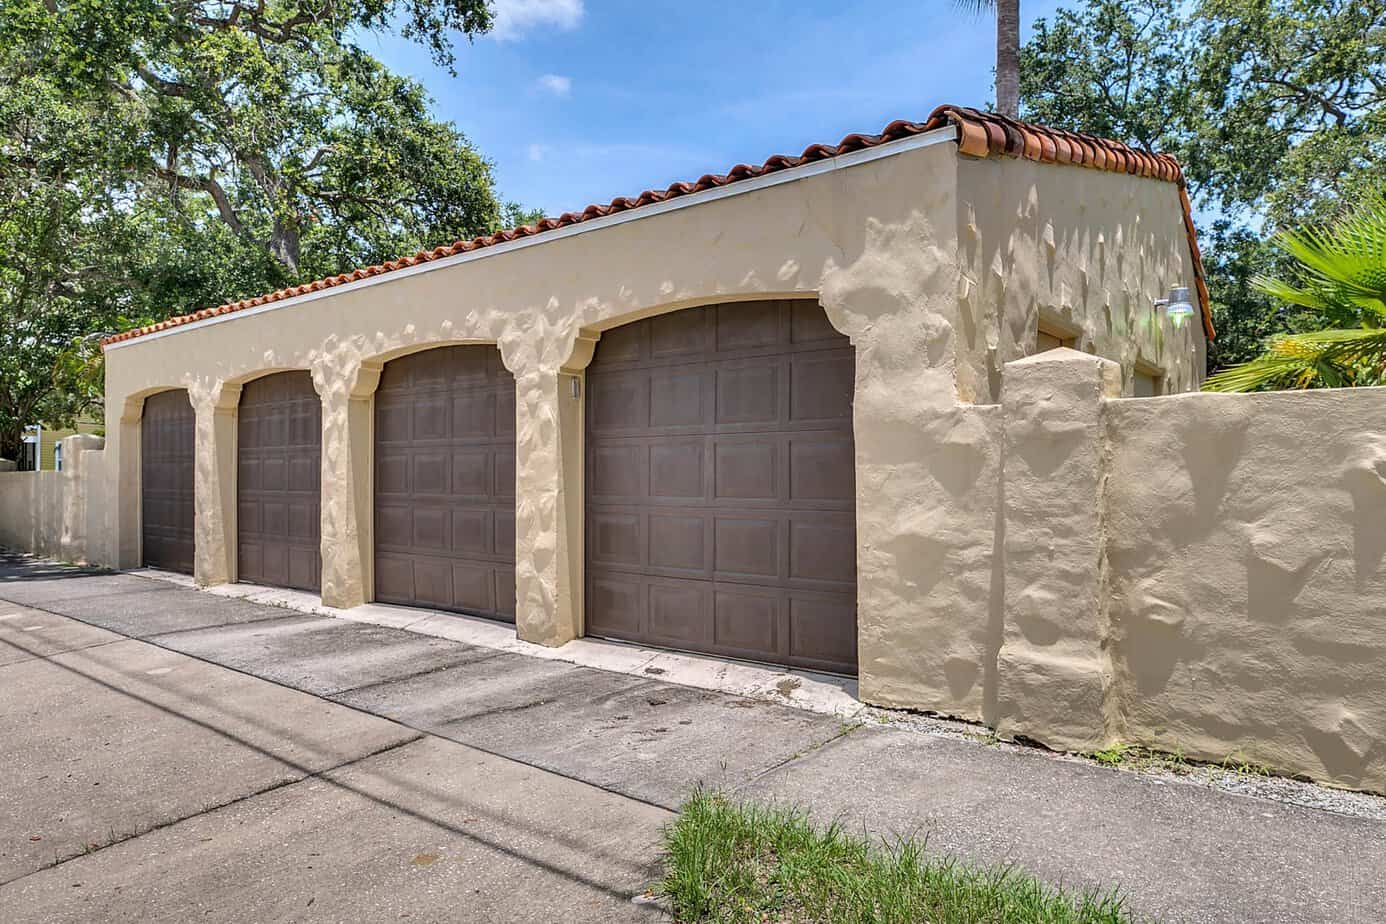 Image of tan garage with four brown doors and red tile barrel roof for the home for sale at 4024 W Bay to Bay Tampa FL 33629